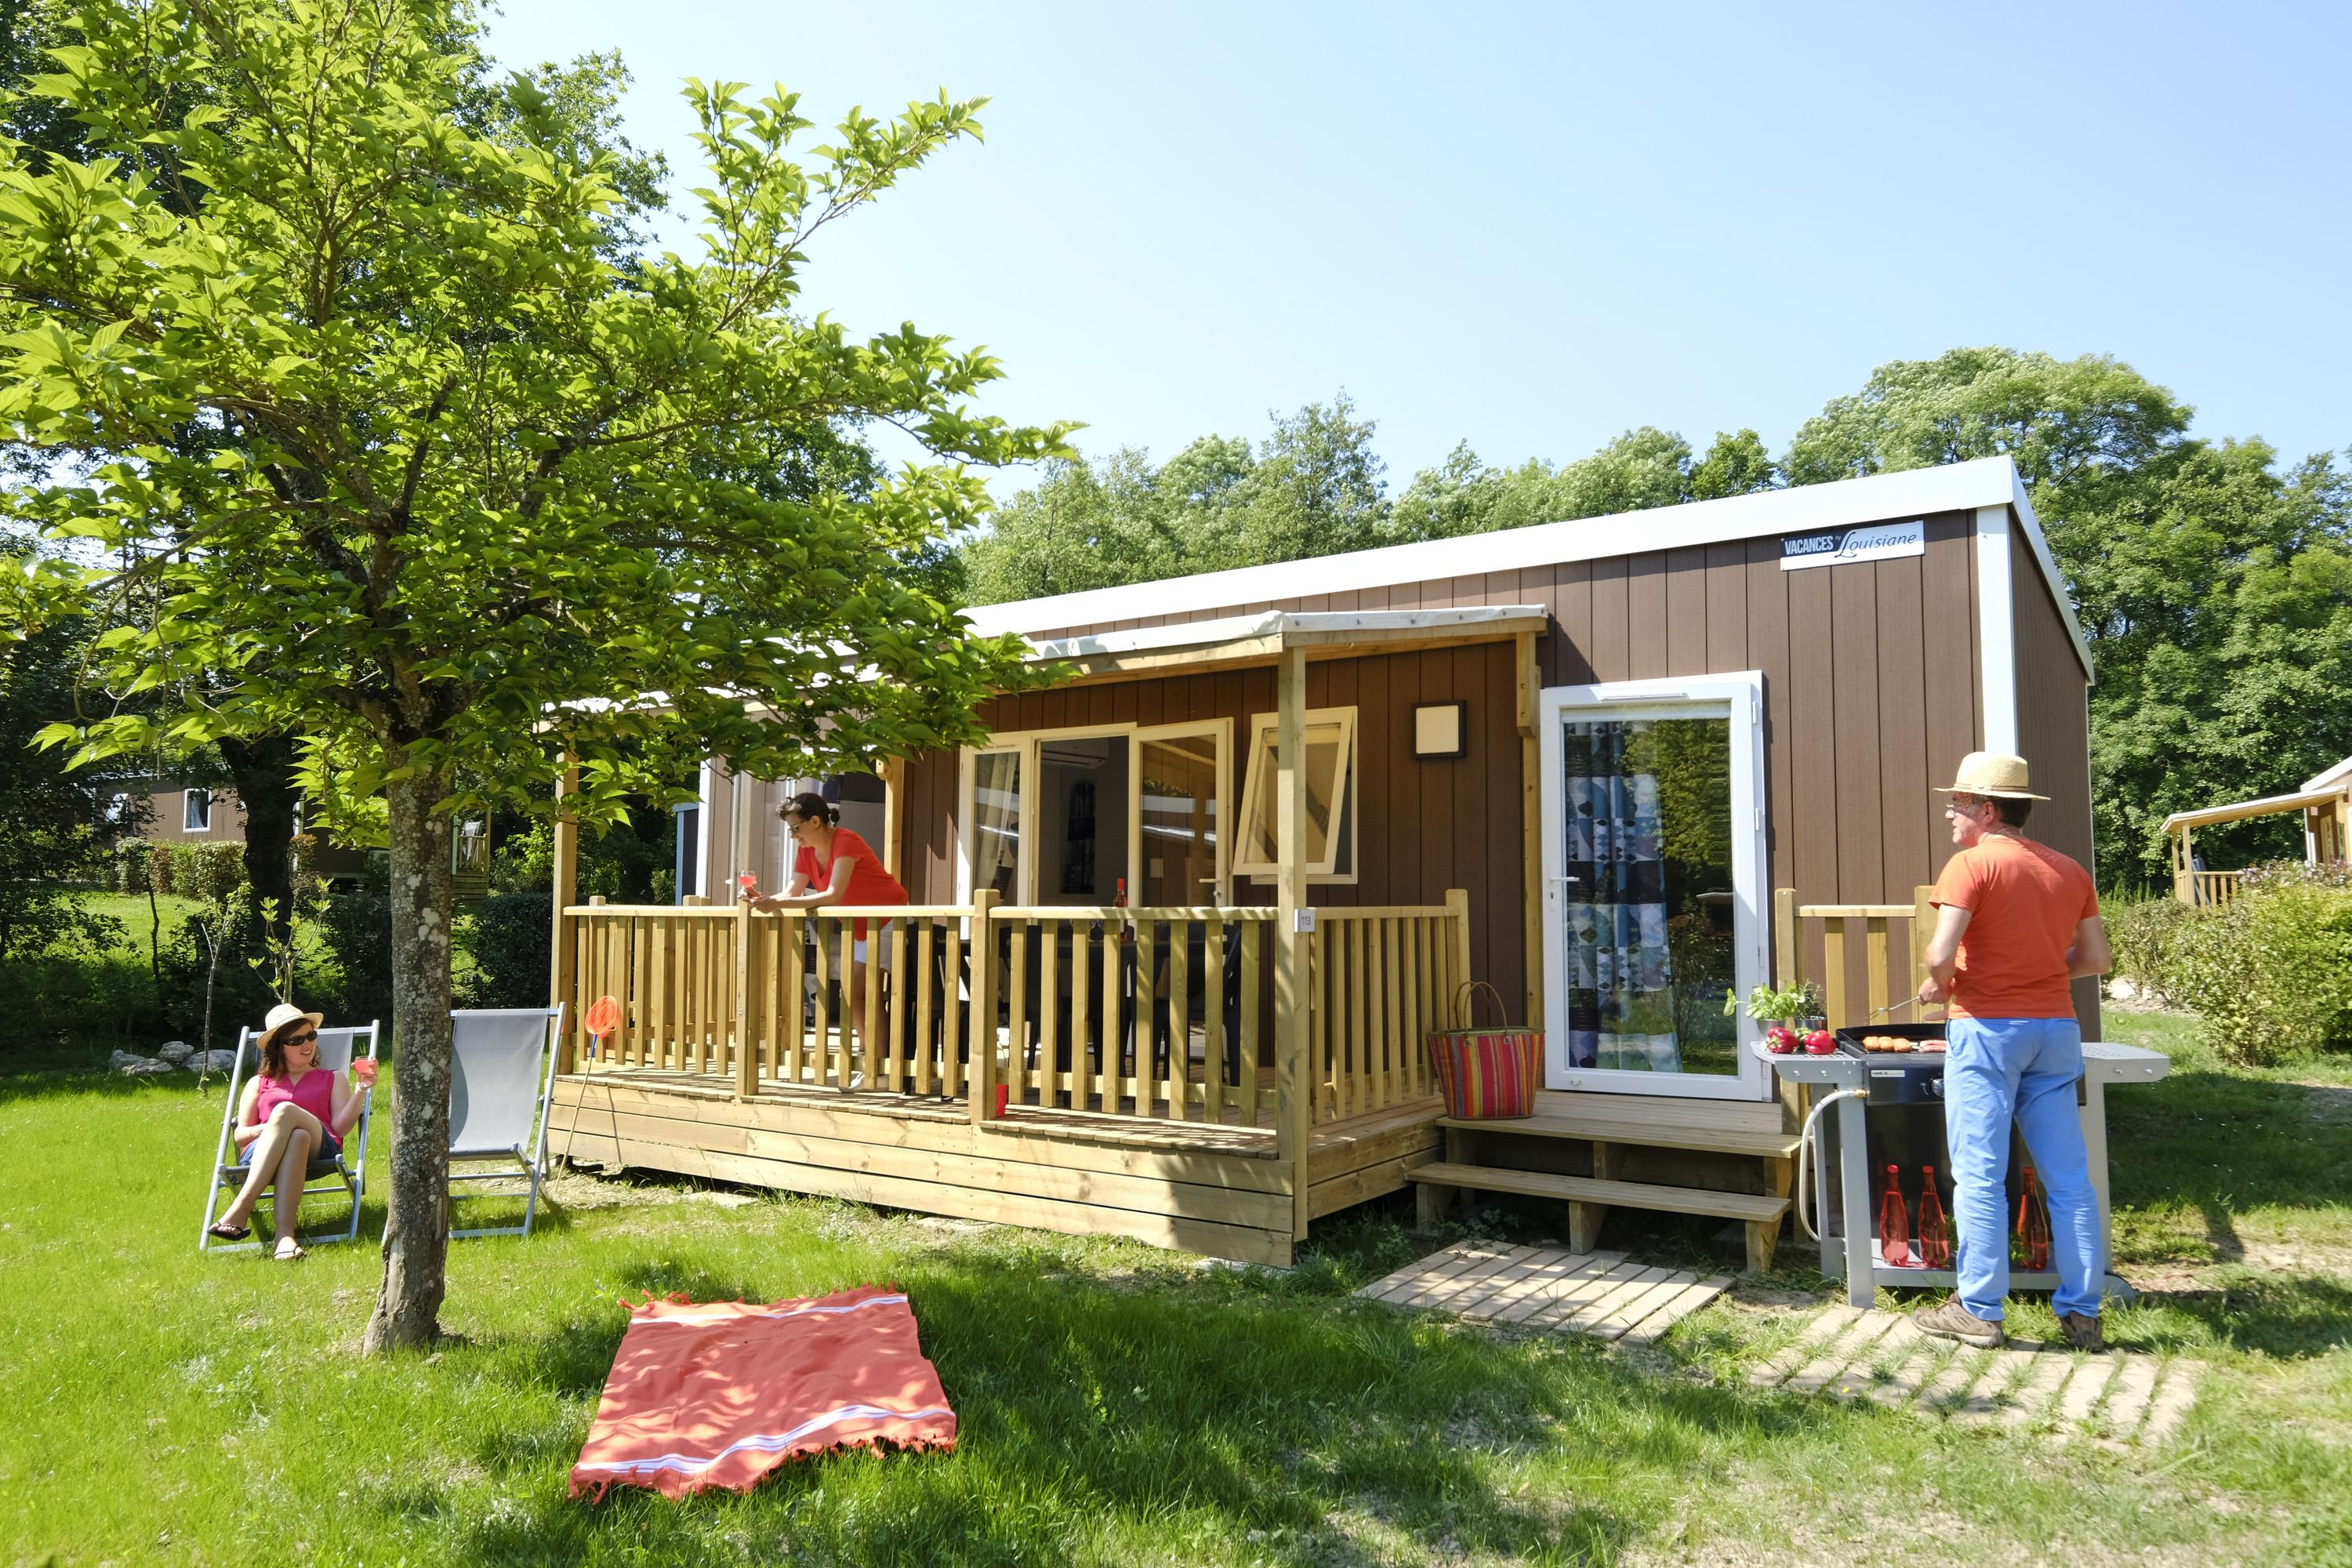 Huuraccommodaties - Cottage Premium Suite Duo - 32M² - Camping La Bretèche****